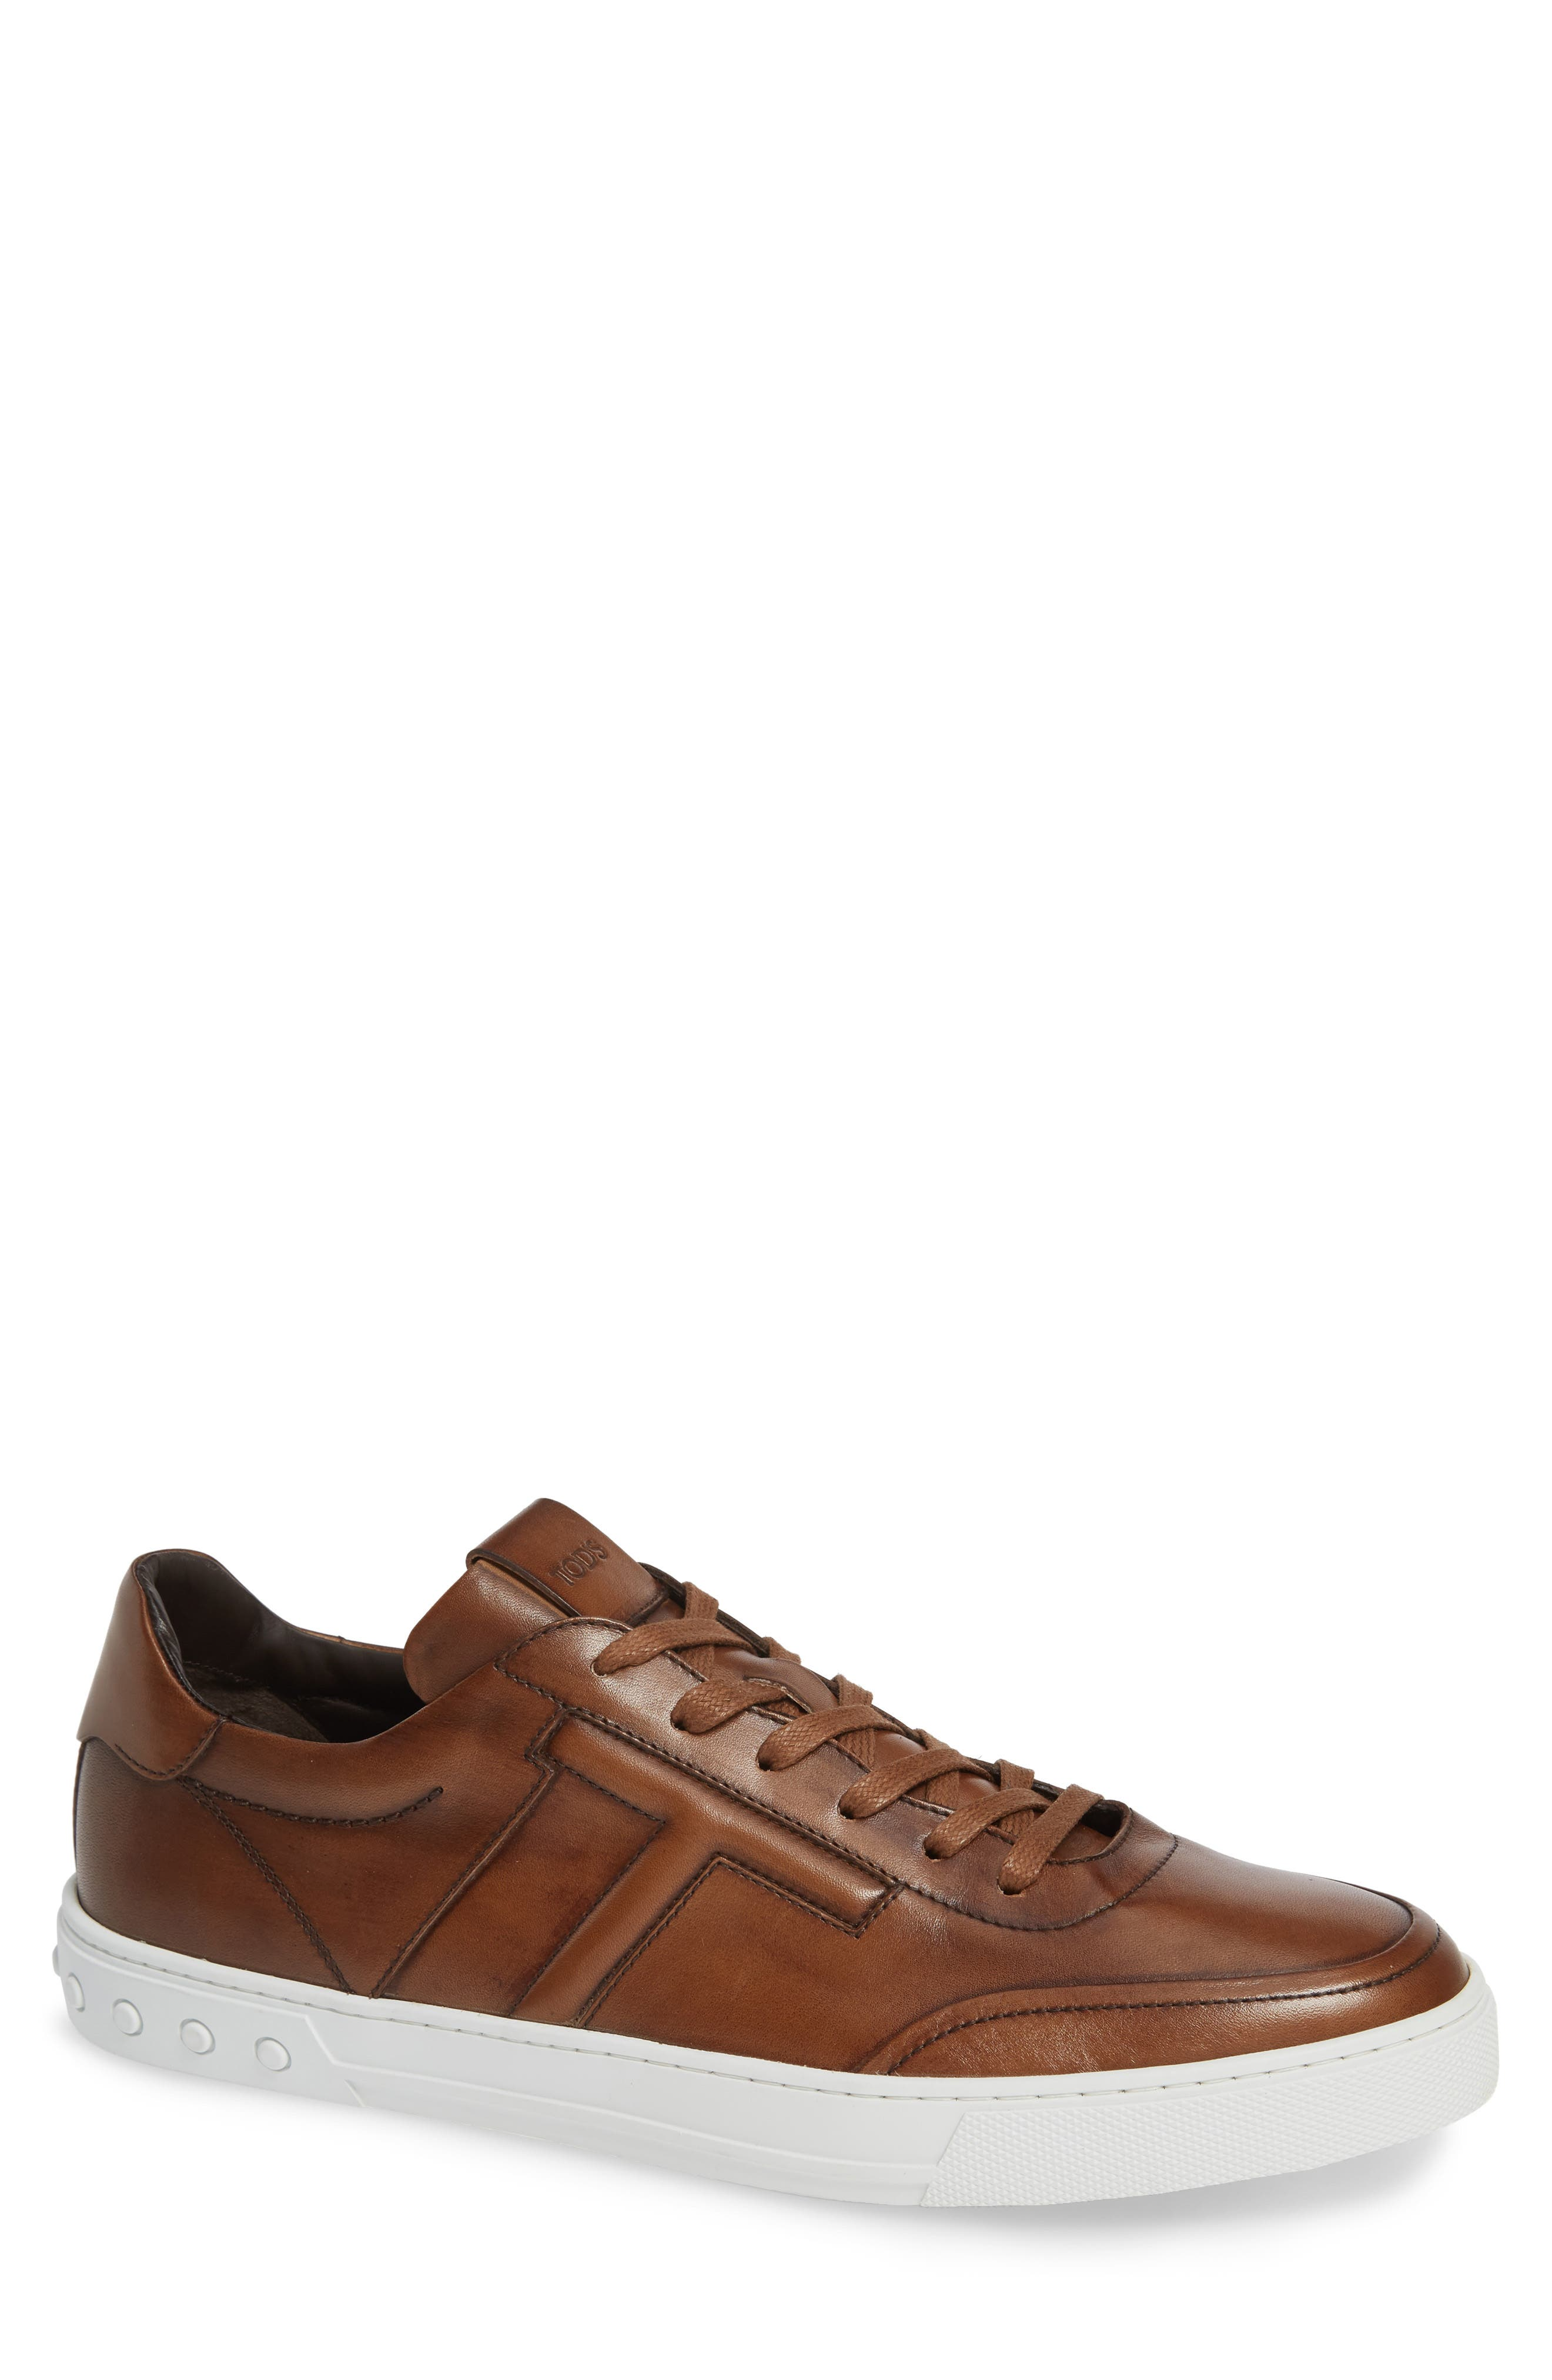 TOD'S 'Cassetta' Sneaker, Main, color, CARAMEL/ SPECIAL LEATHER